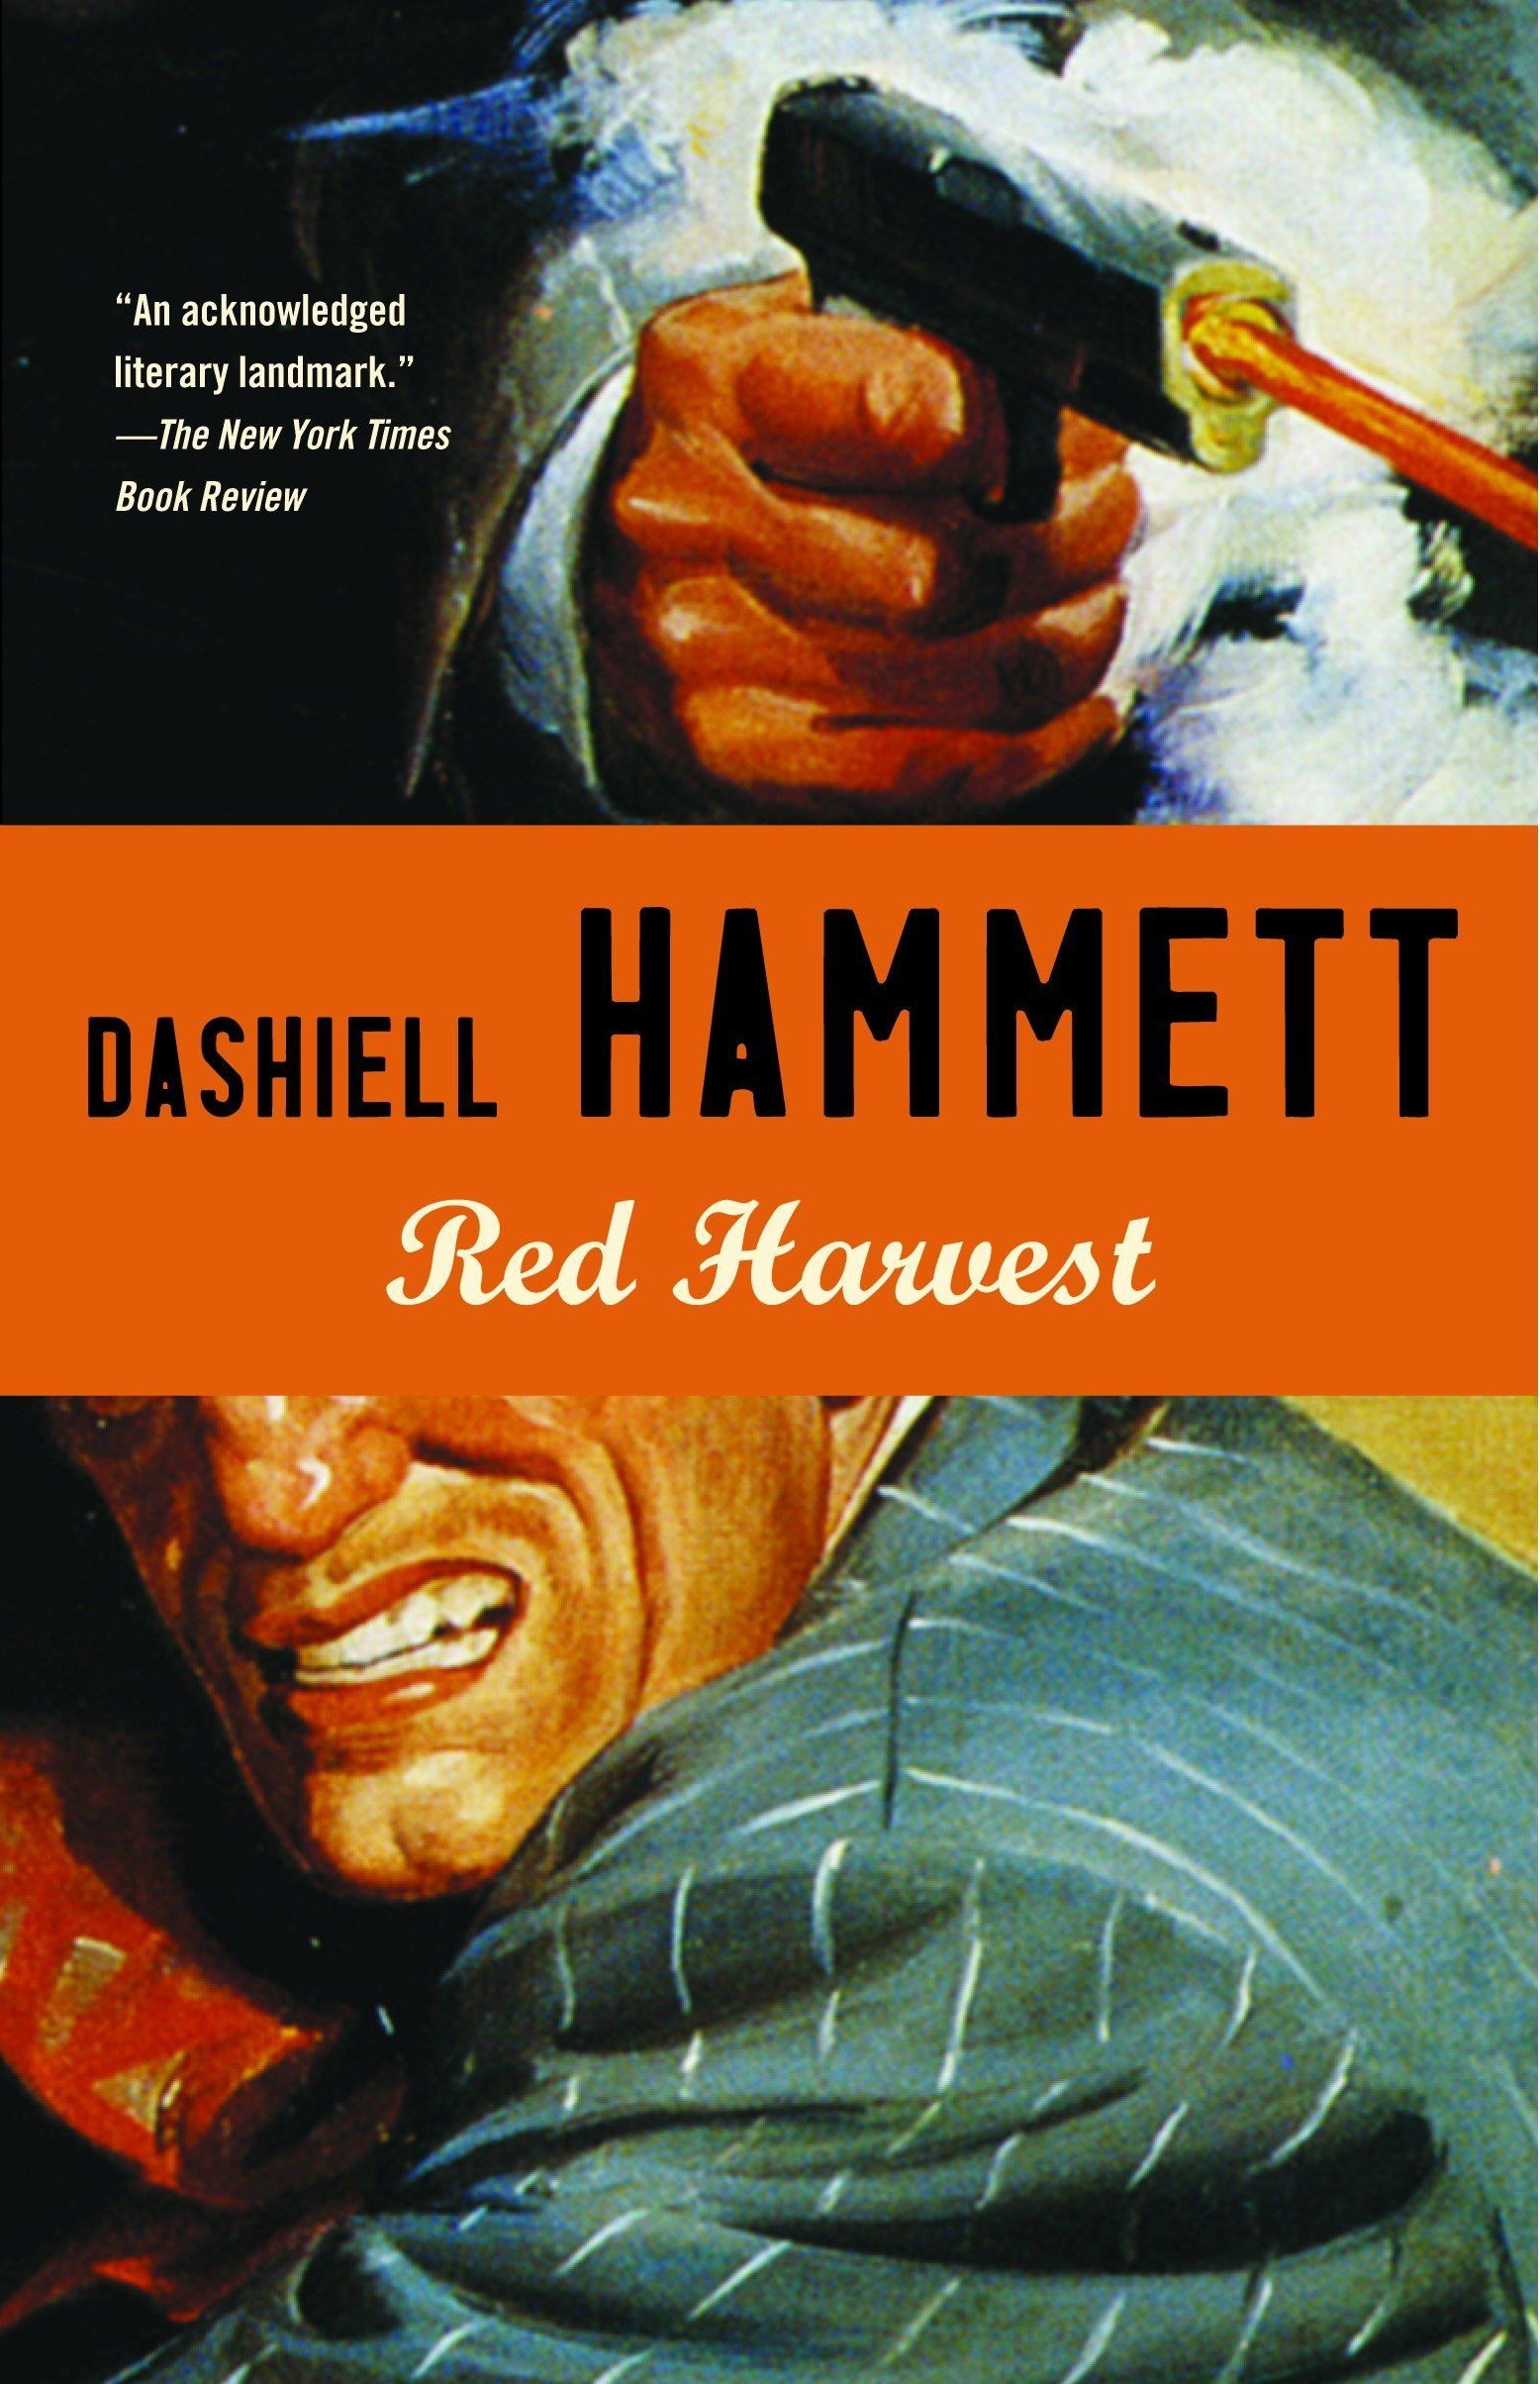 Red Harvest: Amazon.ca: Hammett, Dashiell: Books